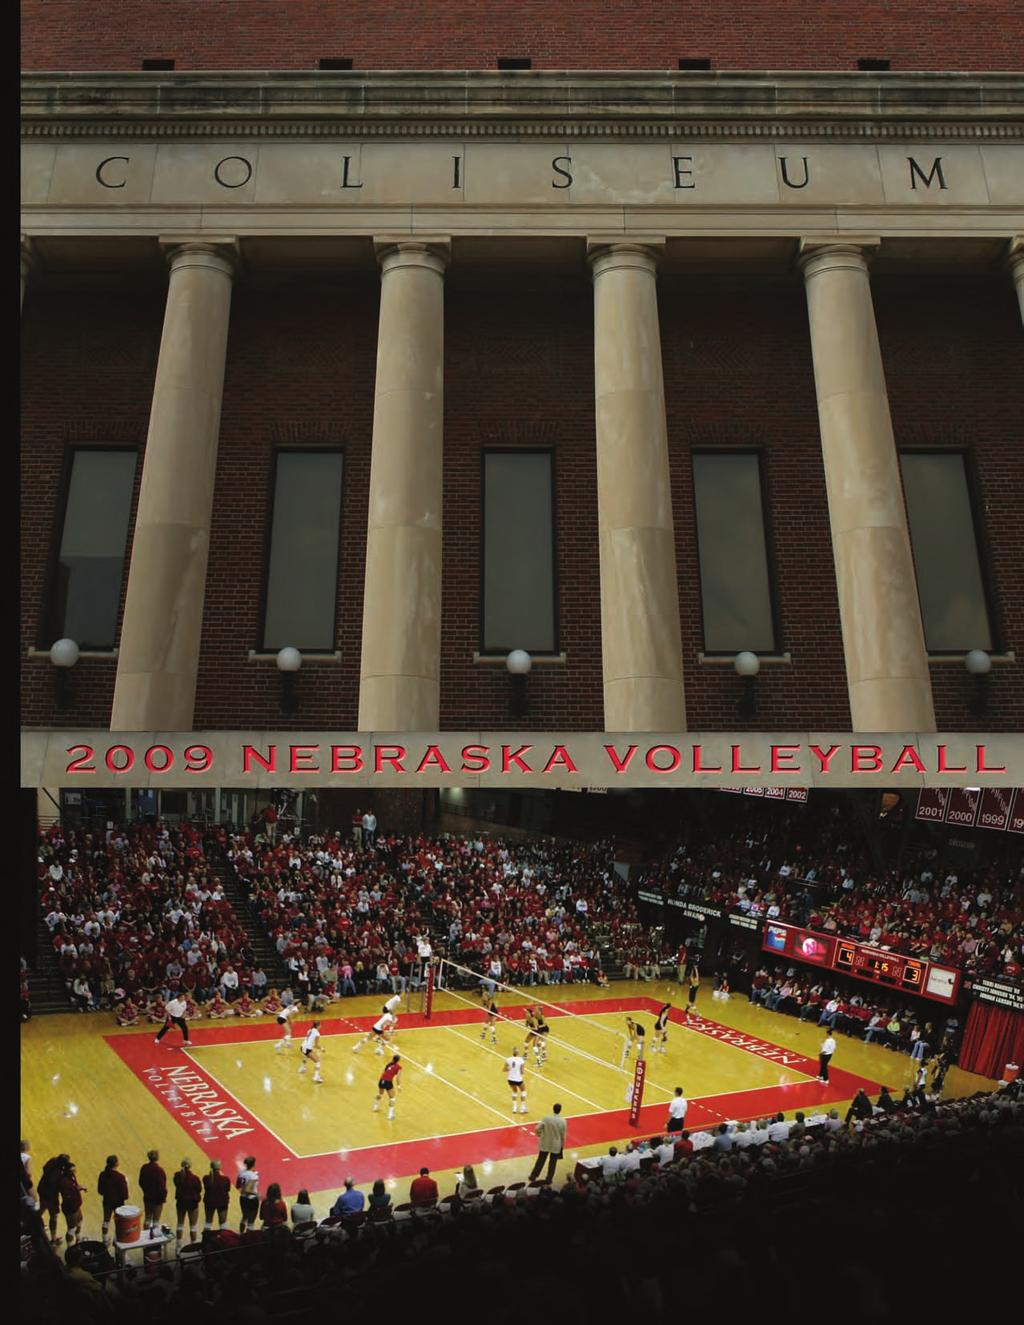 2009 Nebraska Volleyball 1,060 All-Time Wins